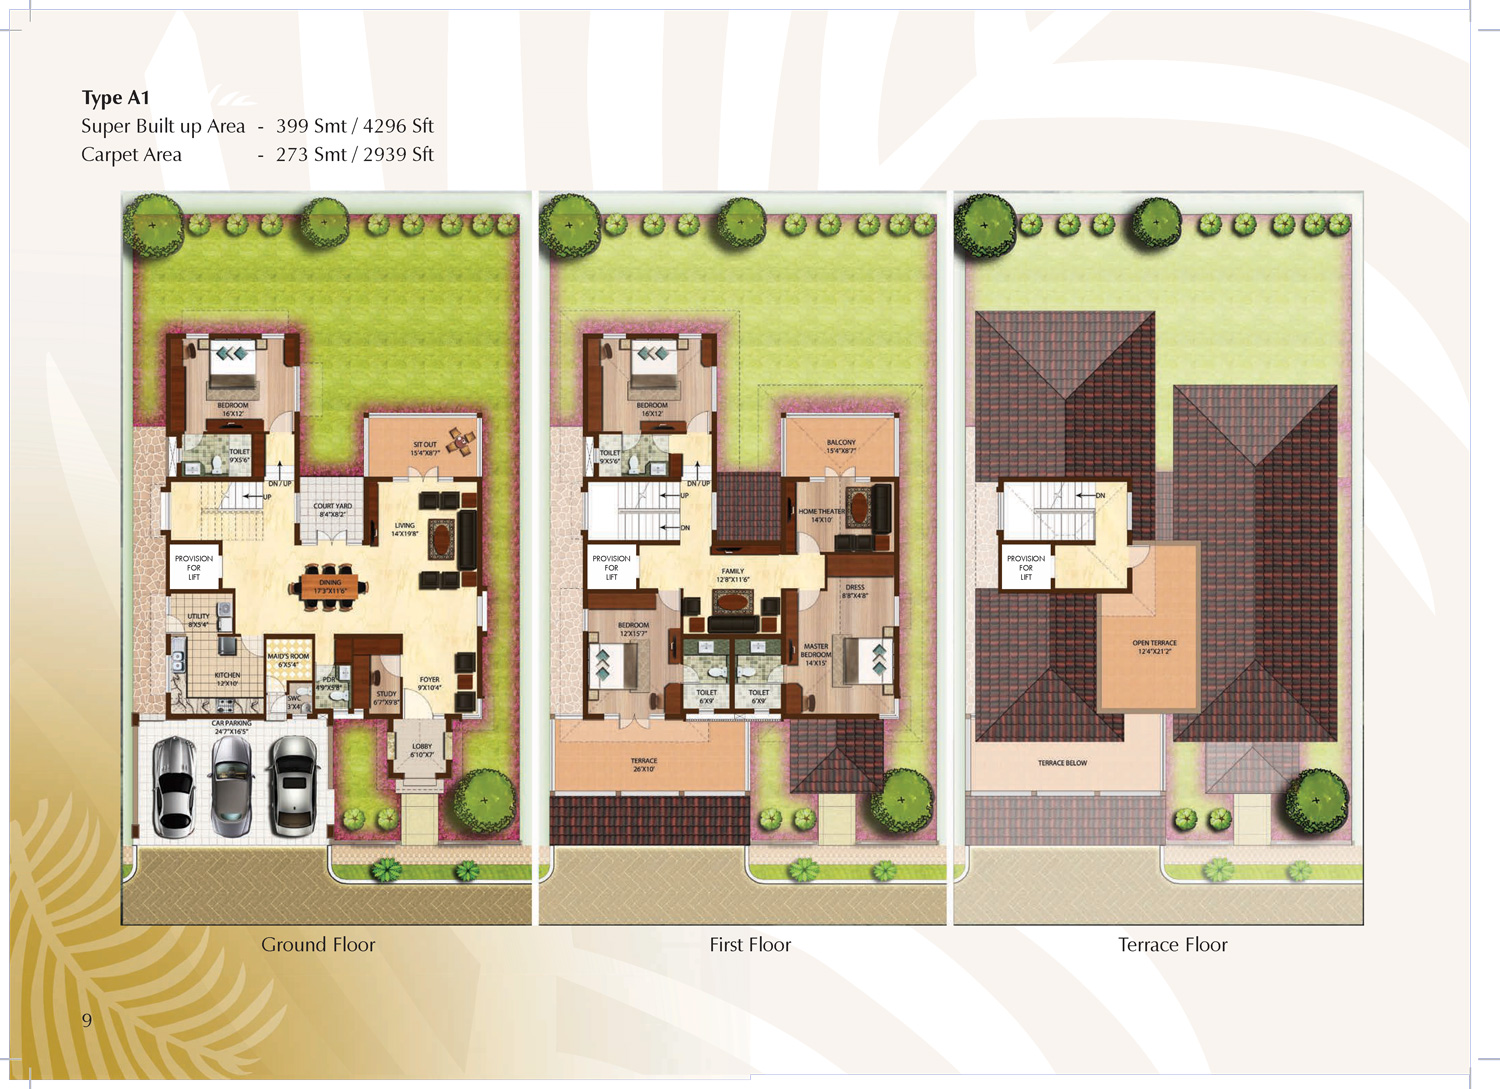 Type A1 - 4296 Sq Ft